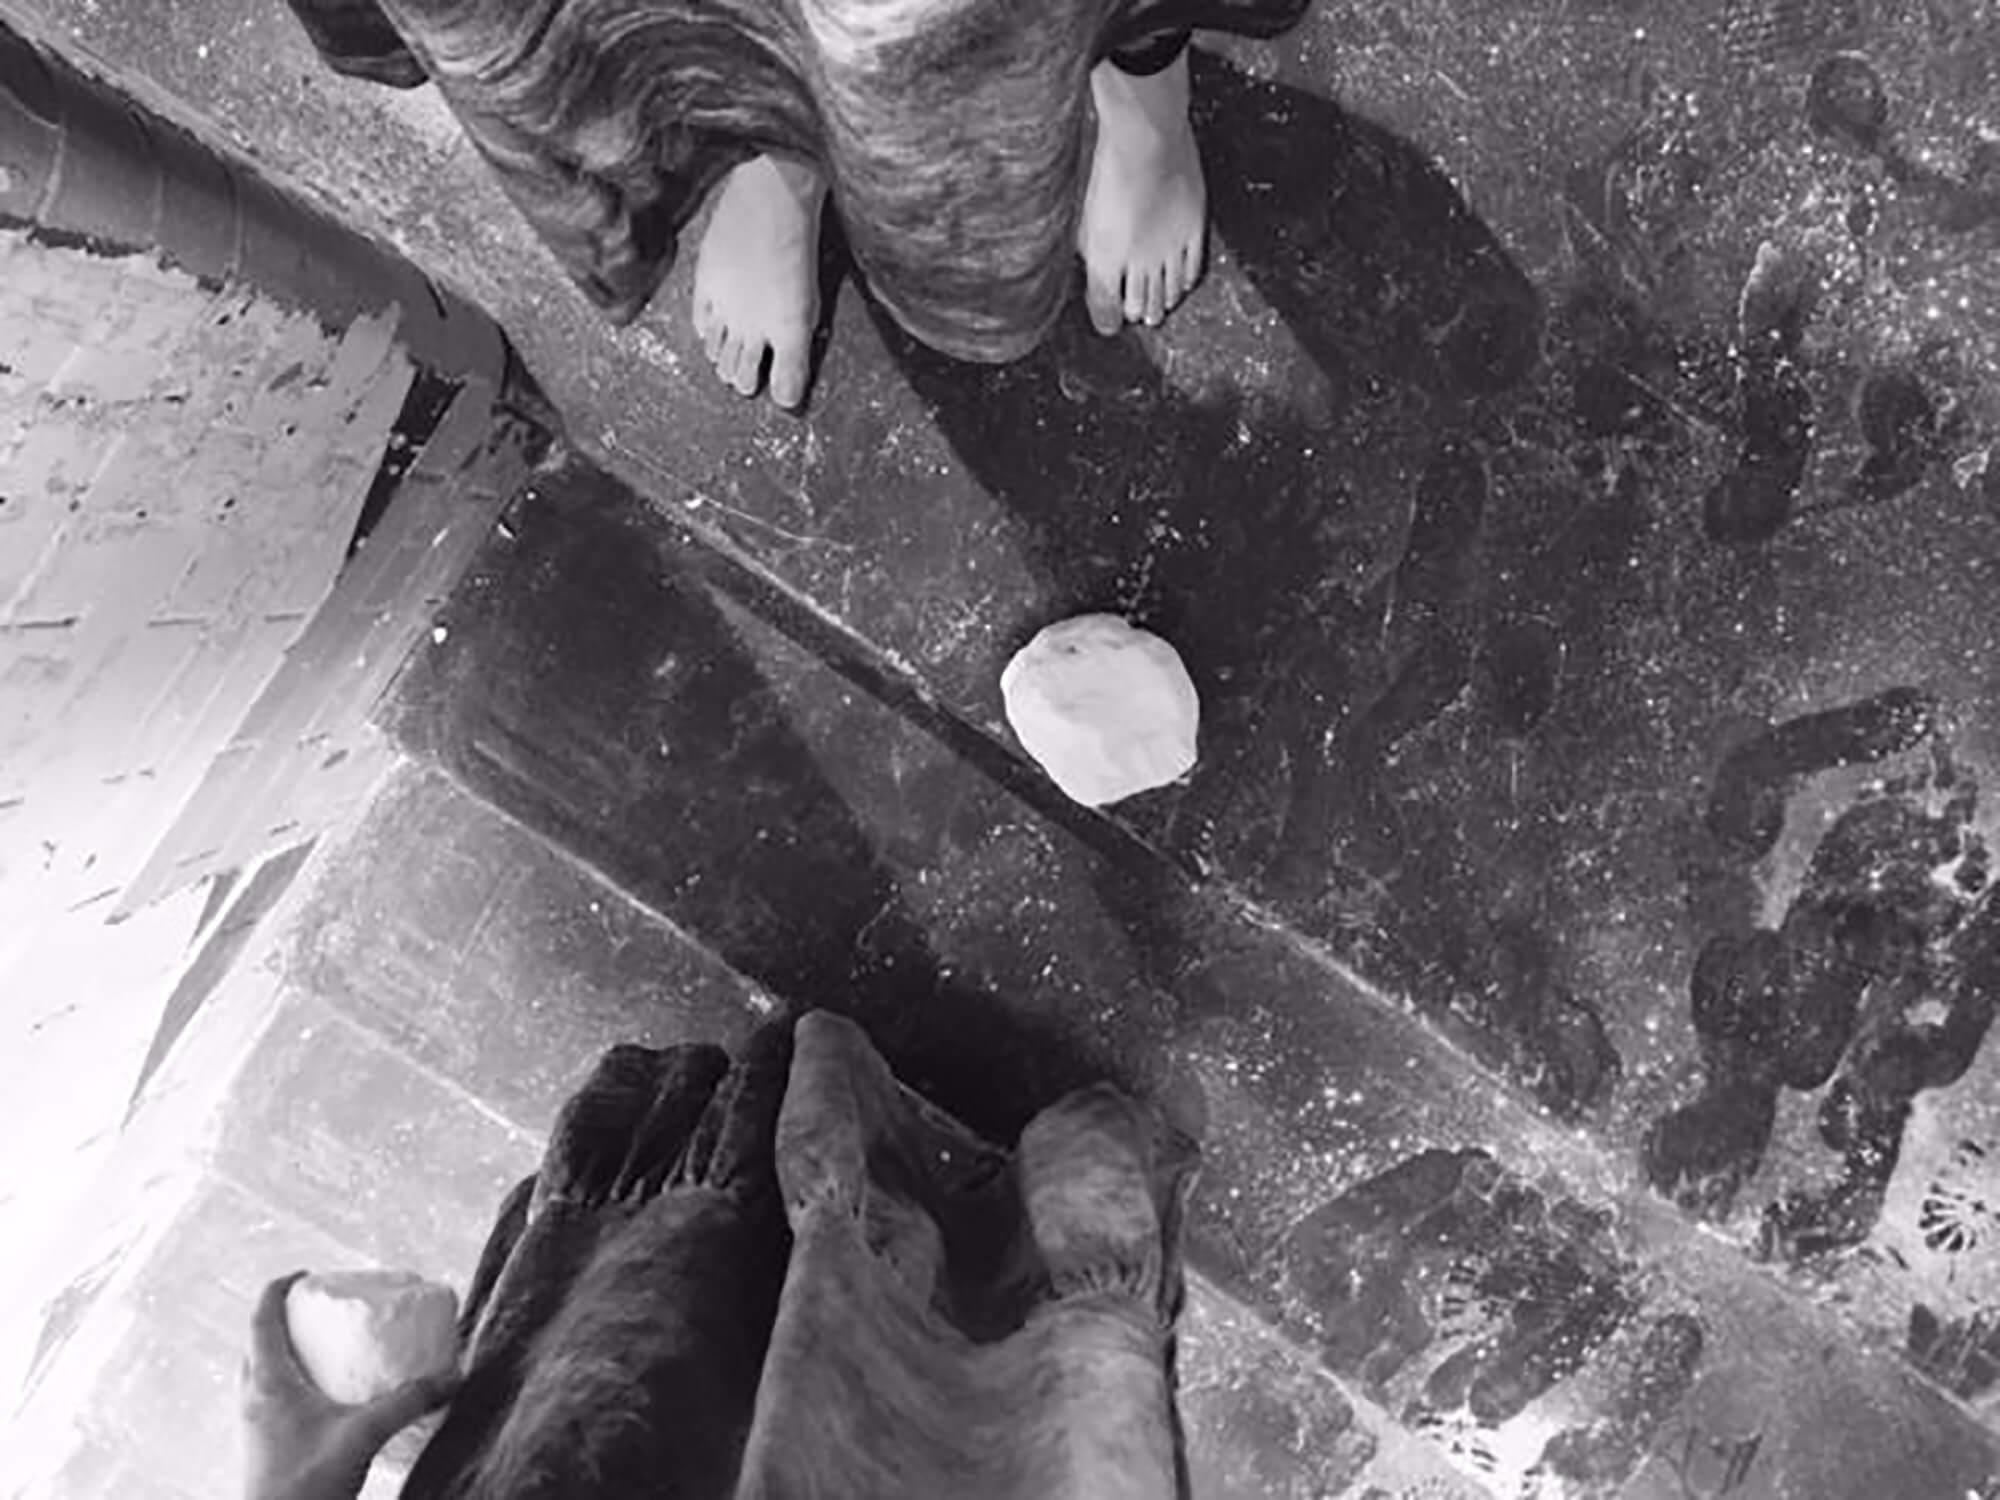 Two people stand at the top of a flight of stairs with a lump of chalk on the floor between them